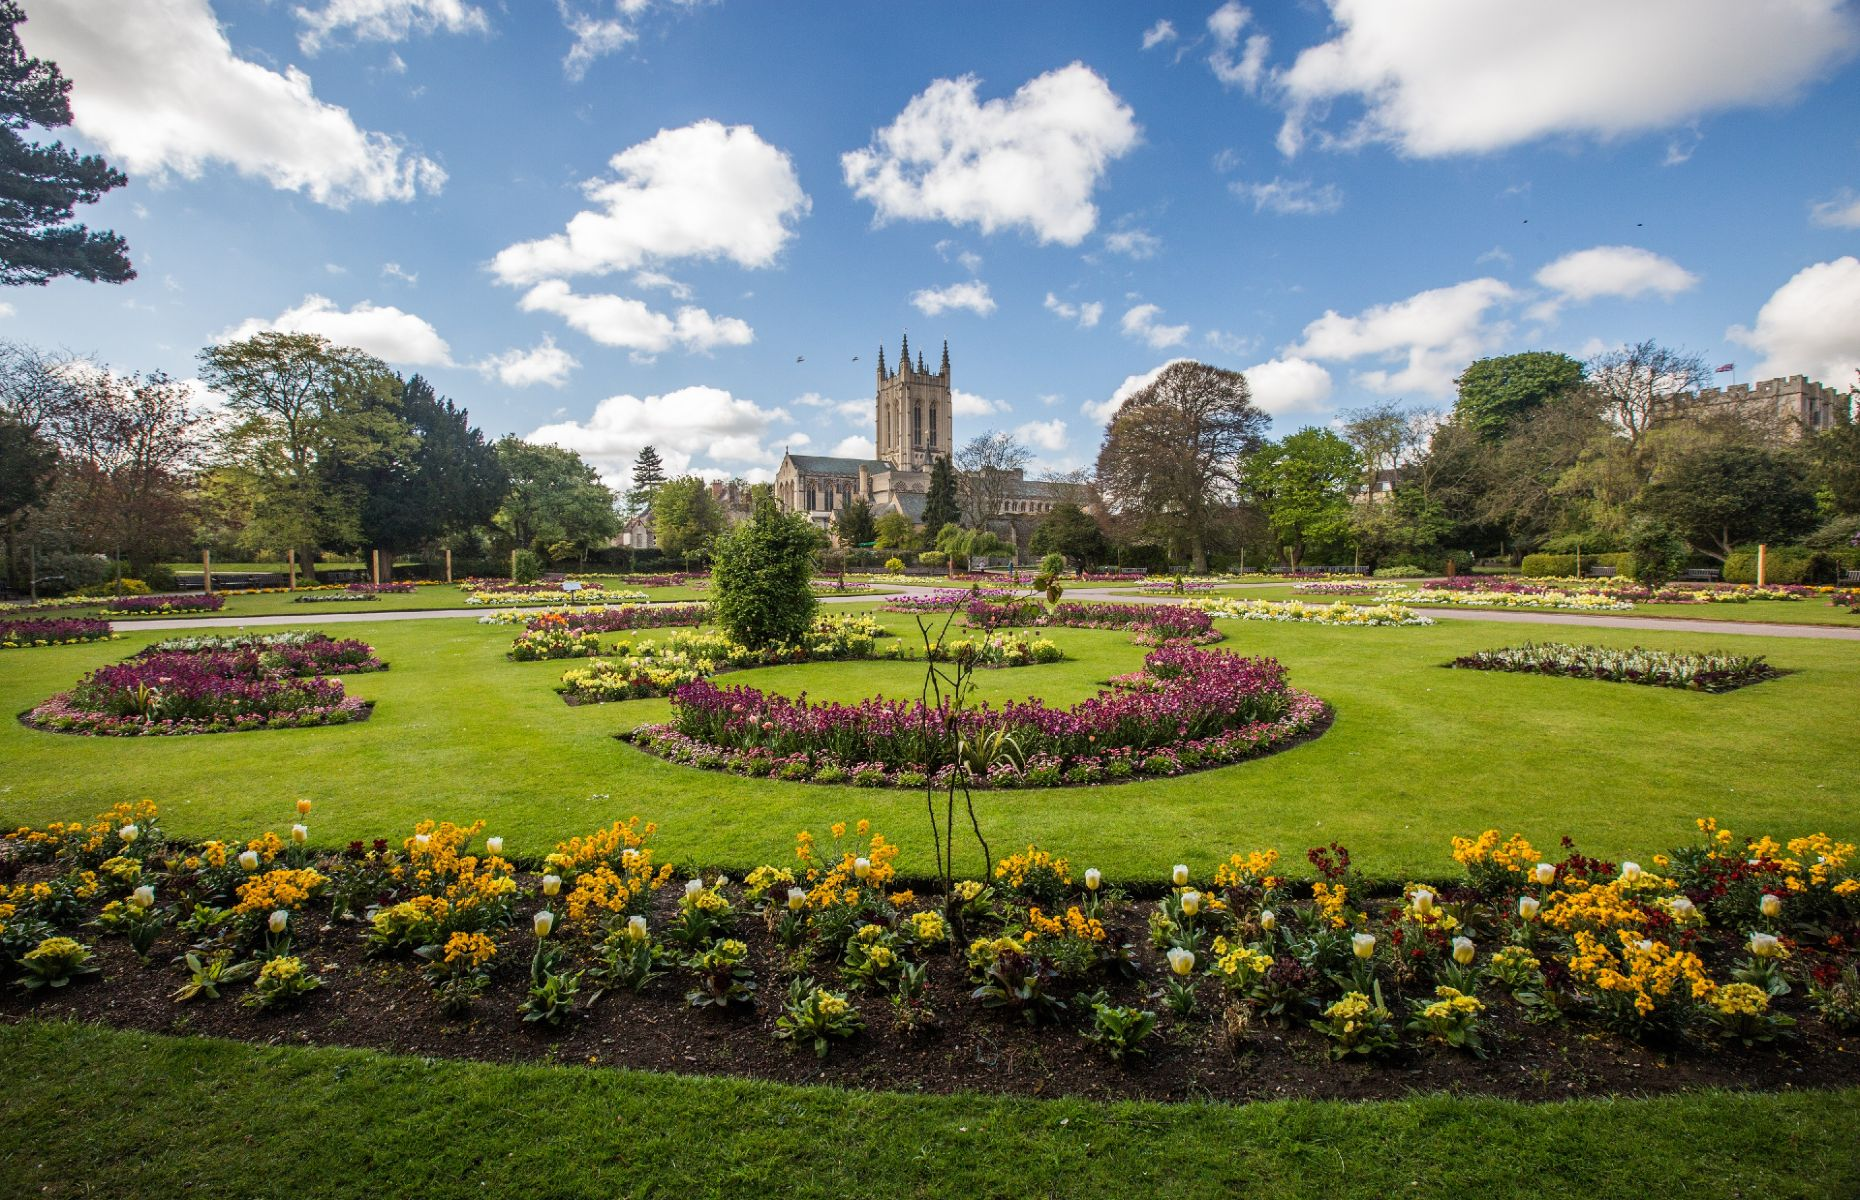 Abbey gardens and cathedral (Image: Visit Suffolk)